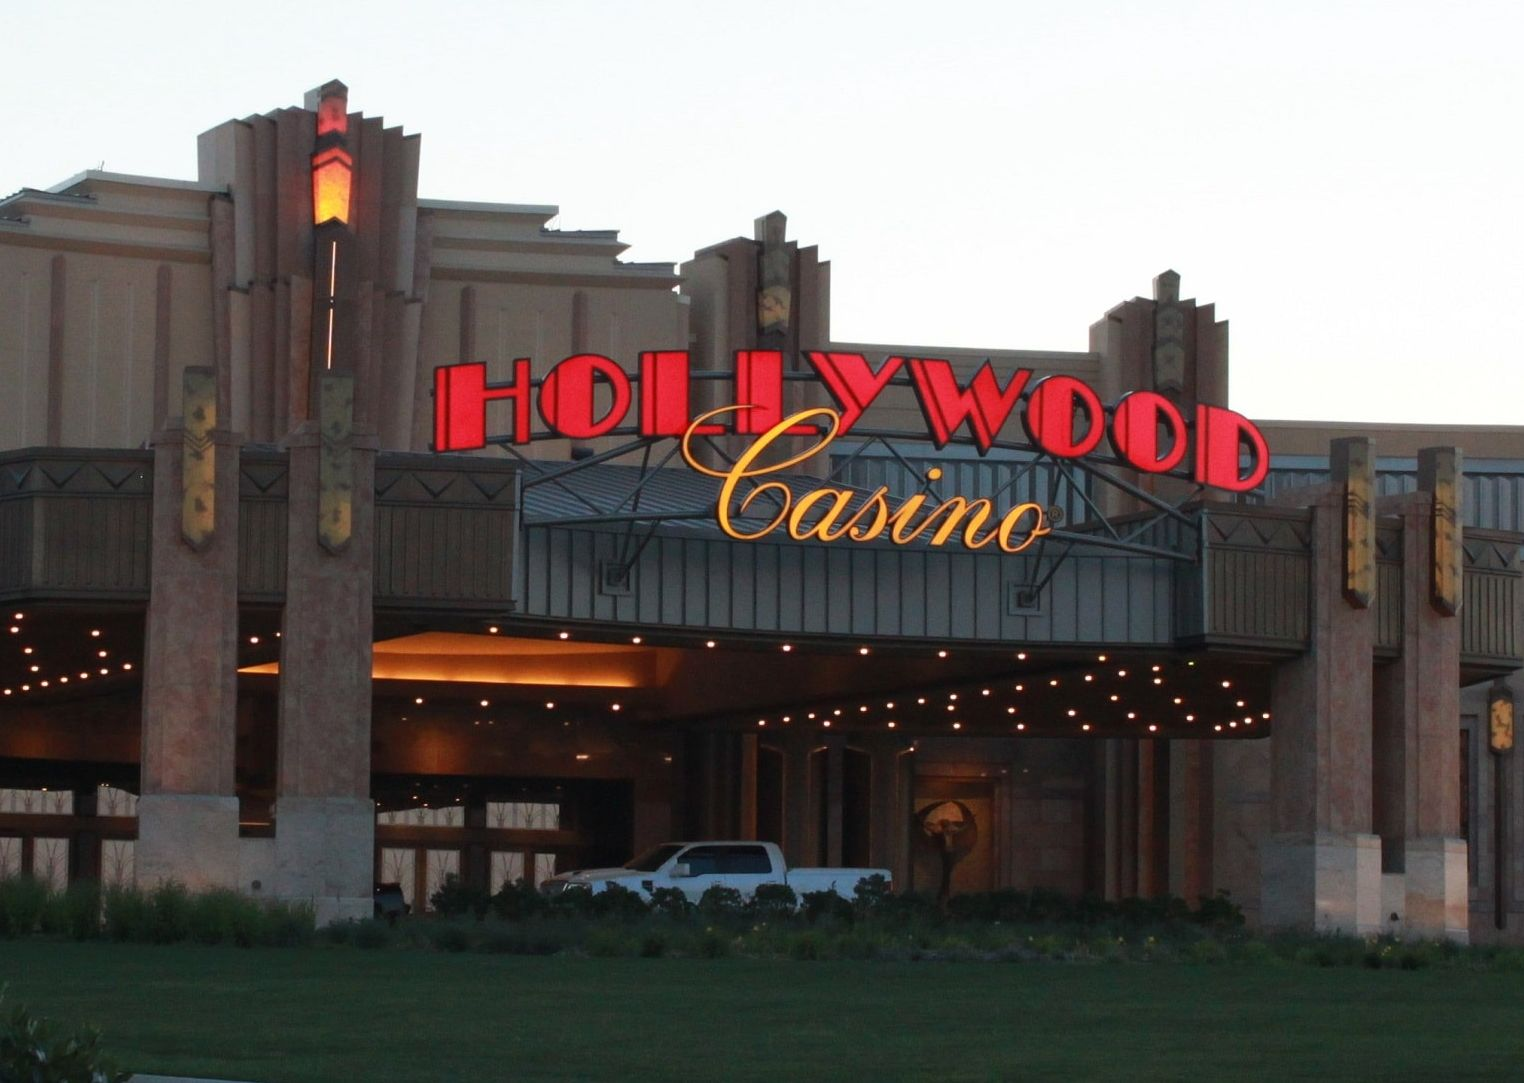 Hollywood casino phone number pc games like warcraft 2